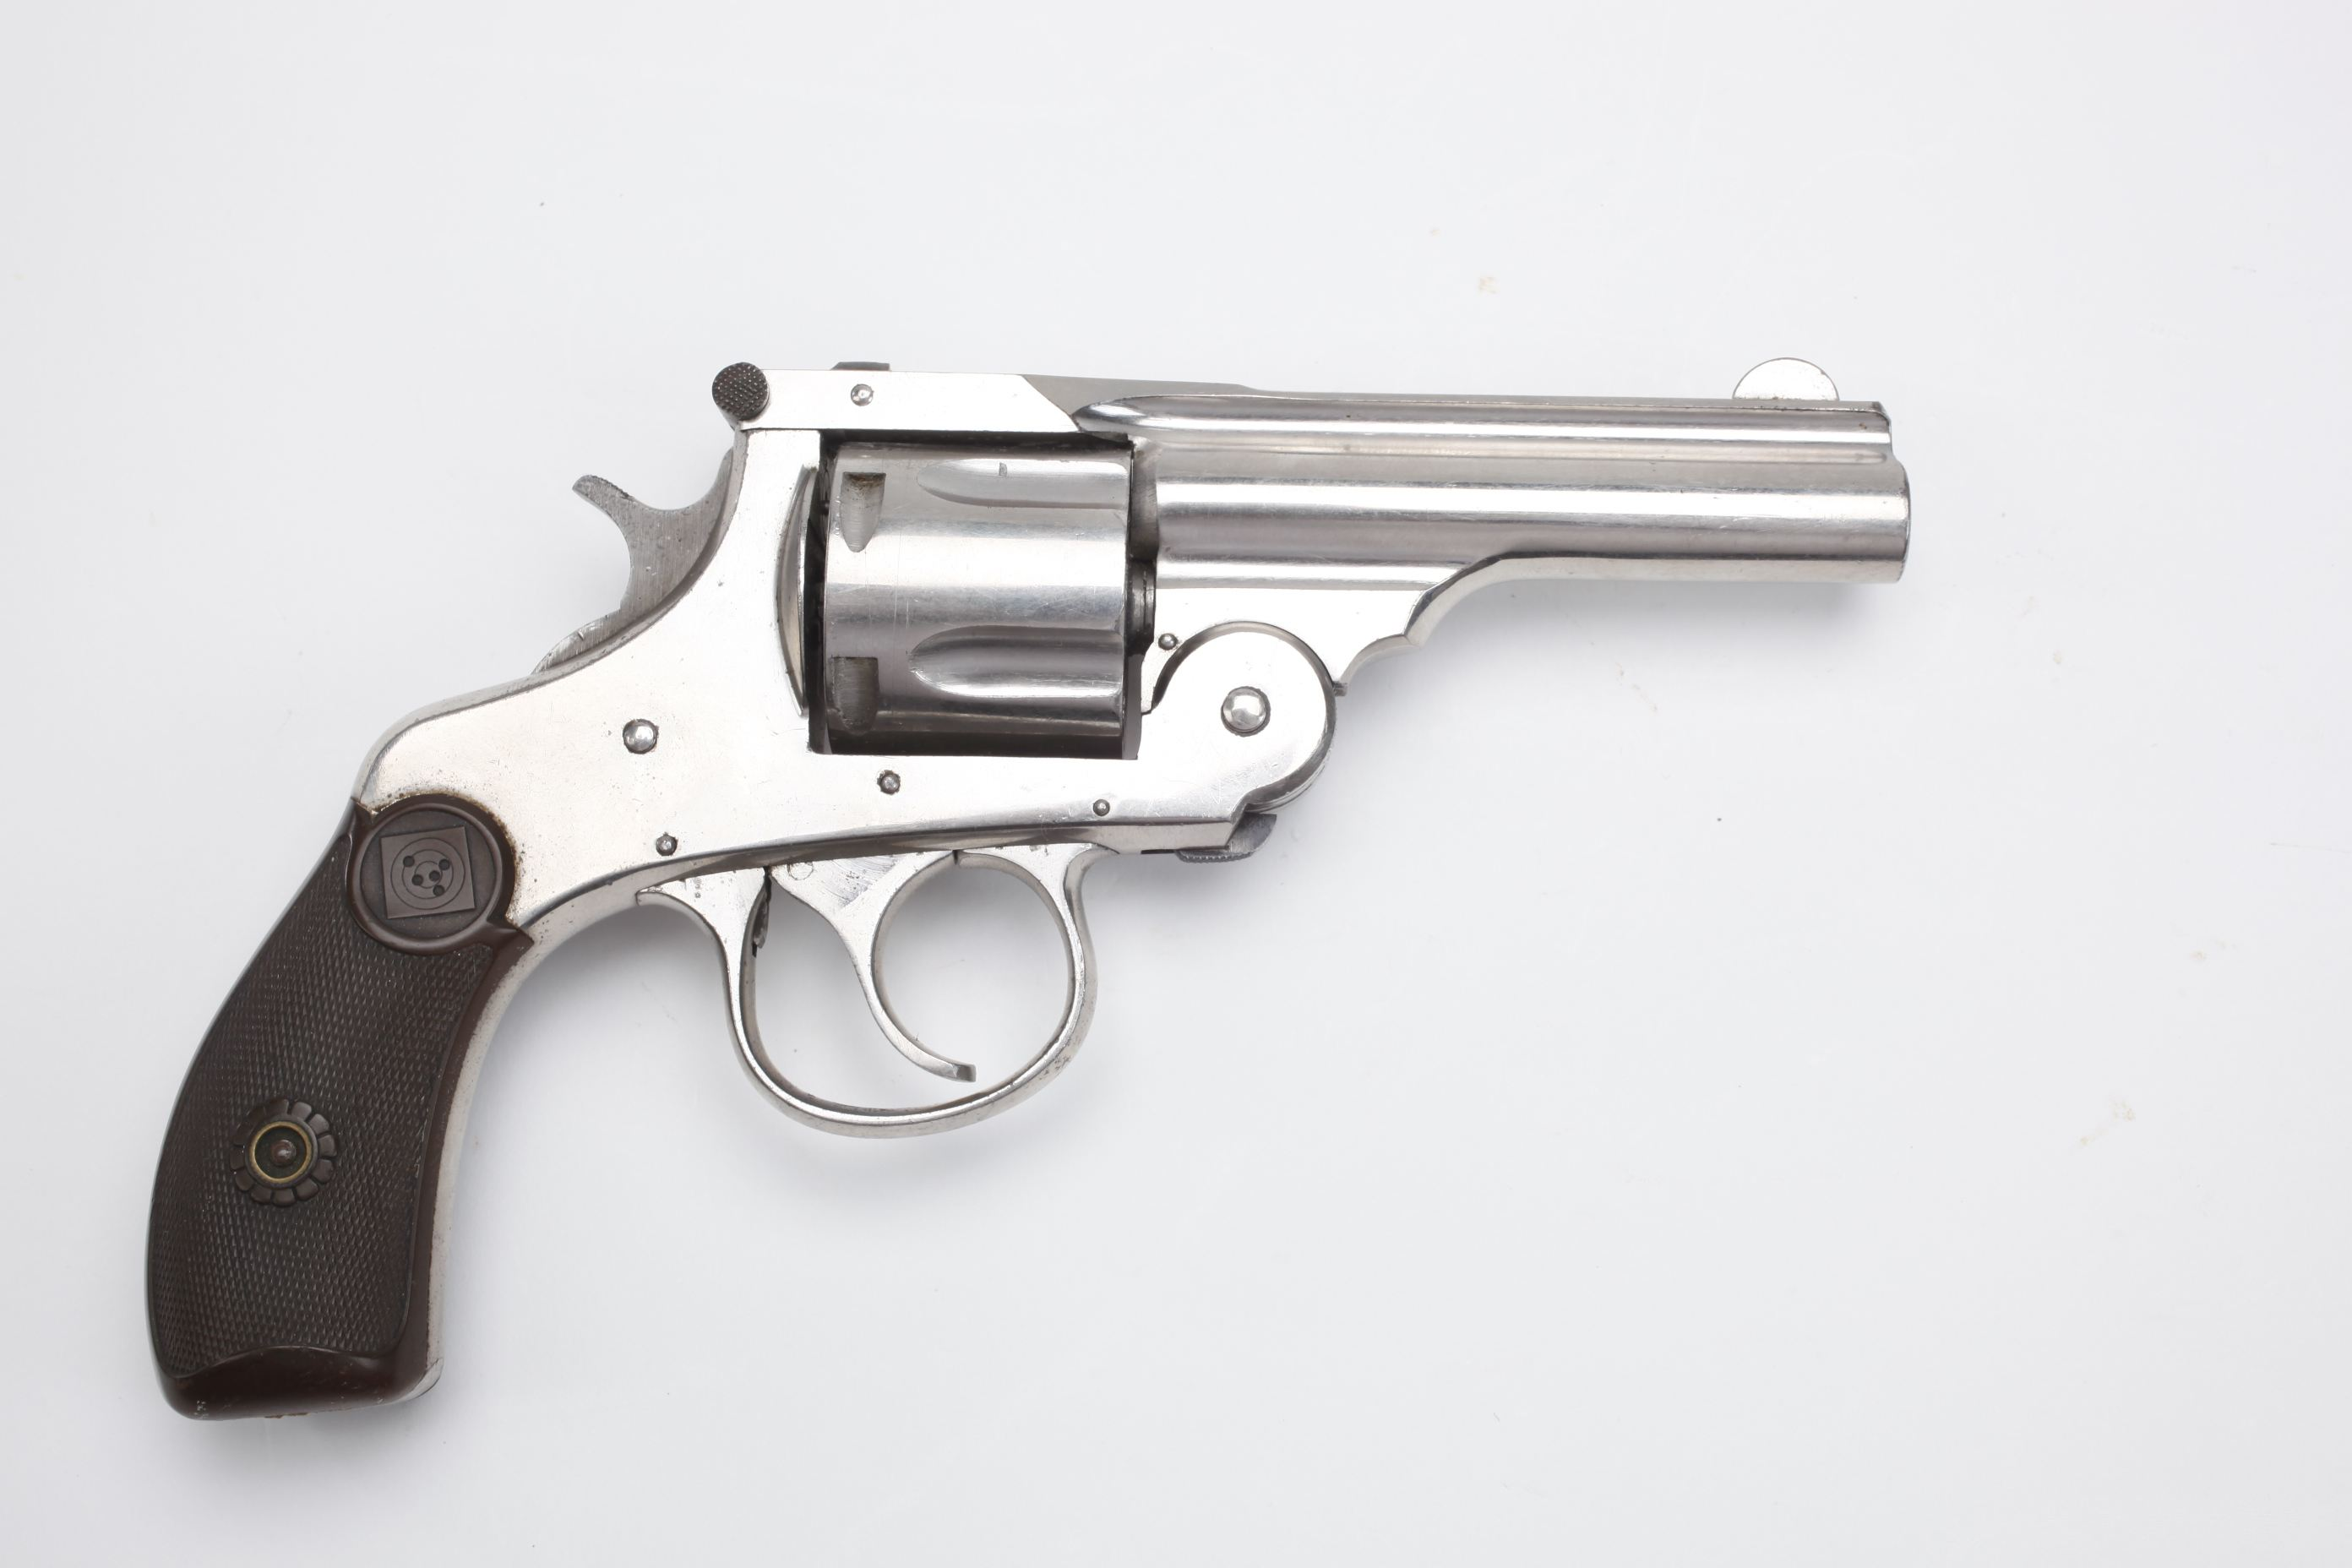 Harrington & Richardson Pocket Model revolver